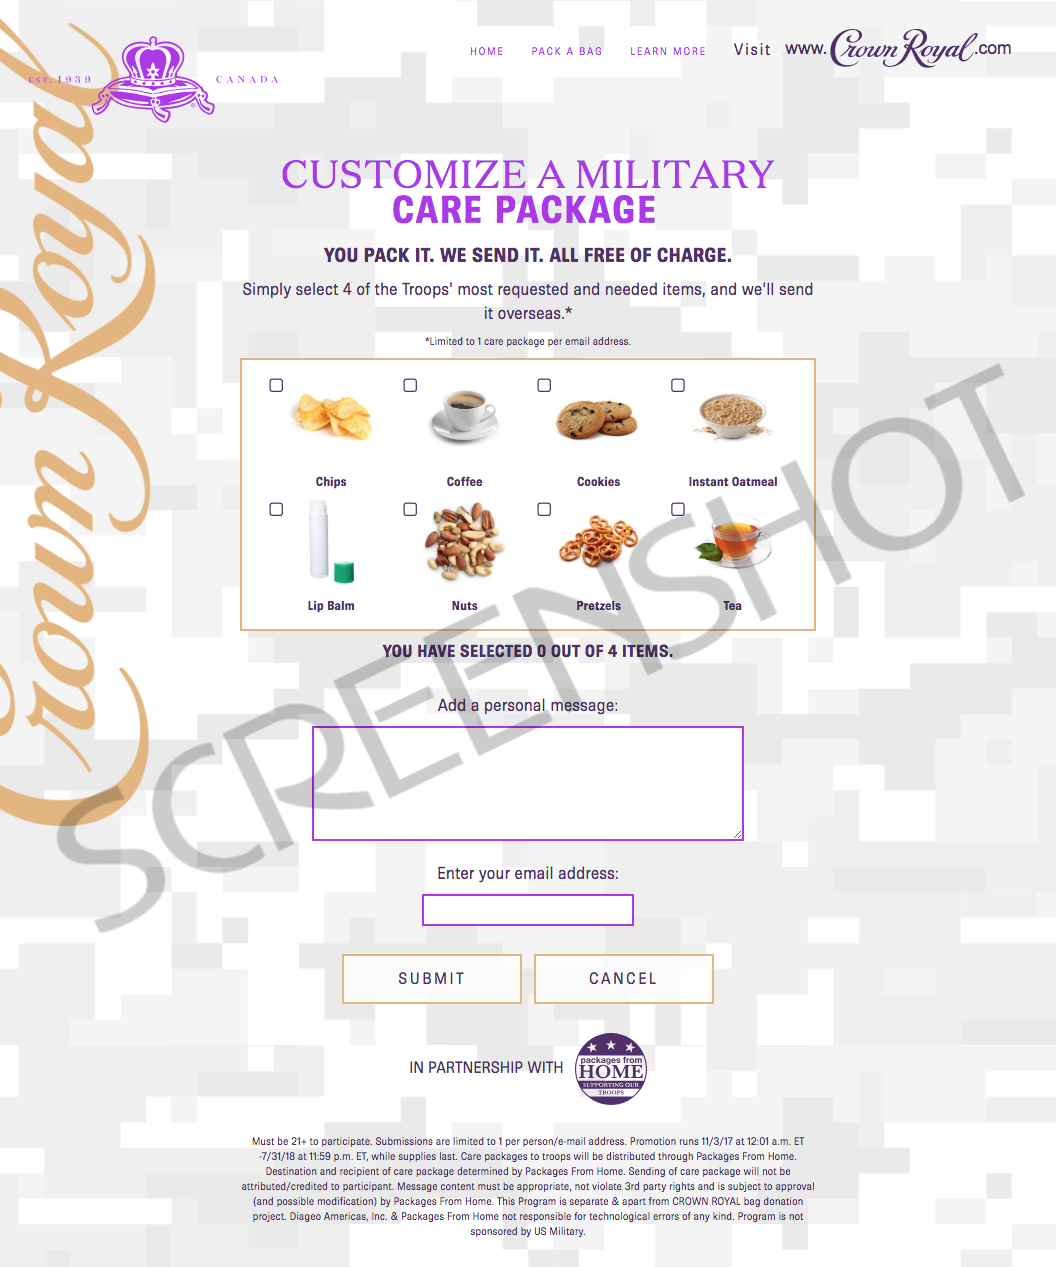 Send a FREE Crown Royal Bag Military Care Package to the Troops